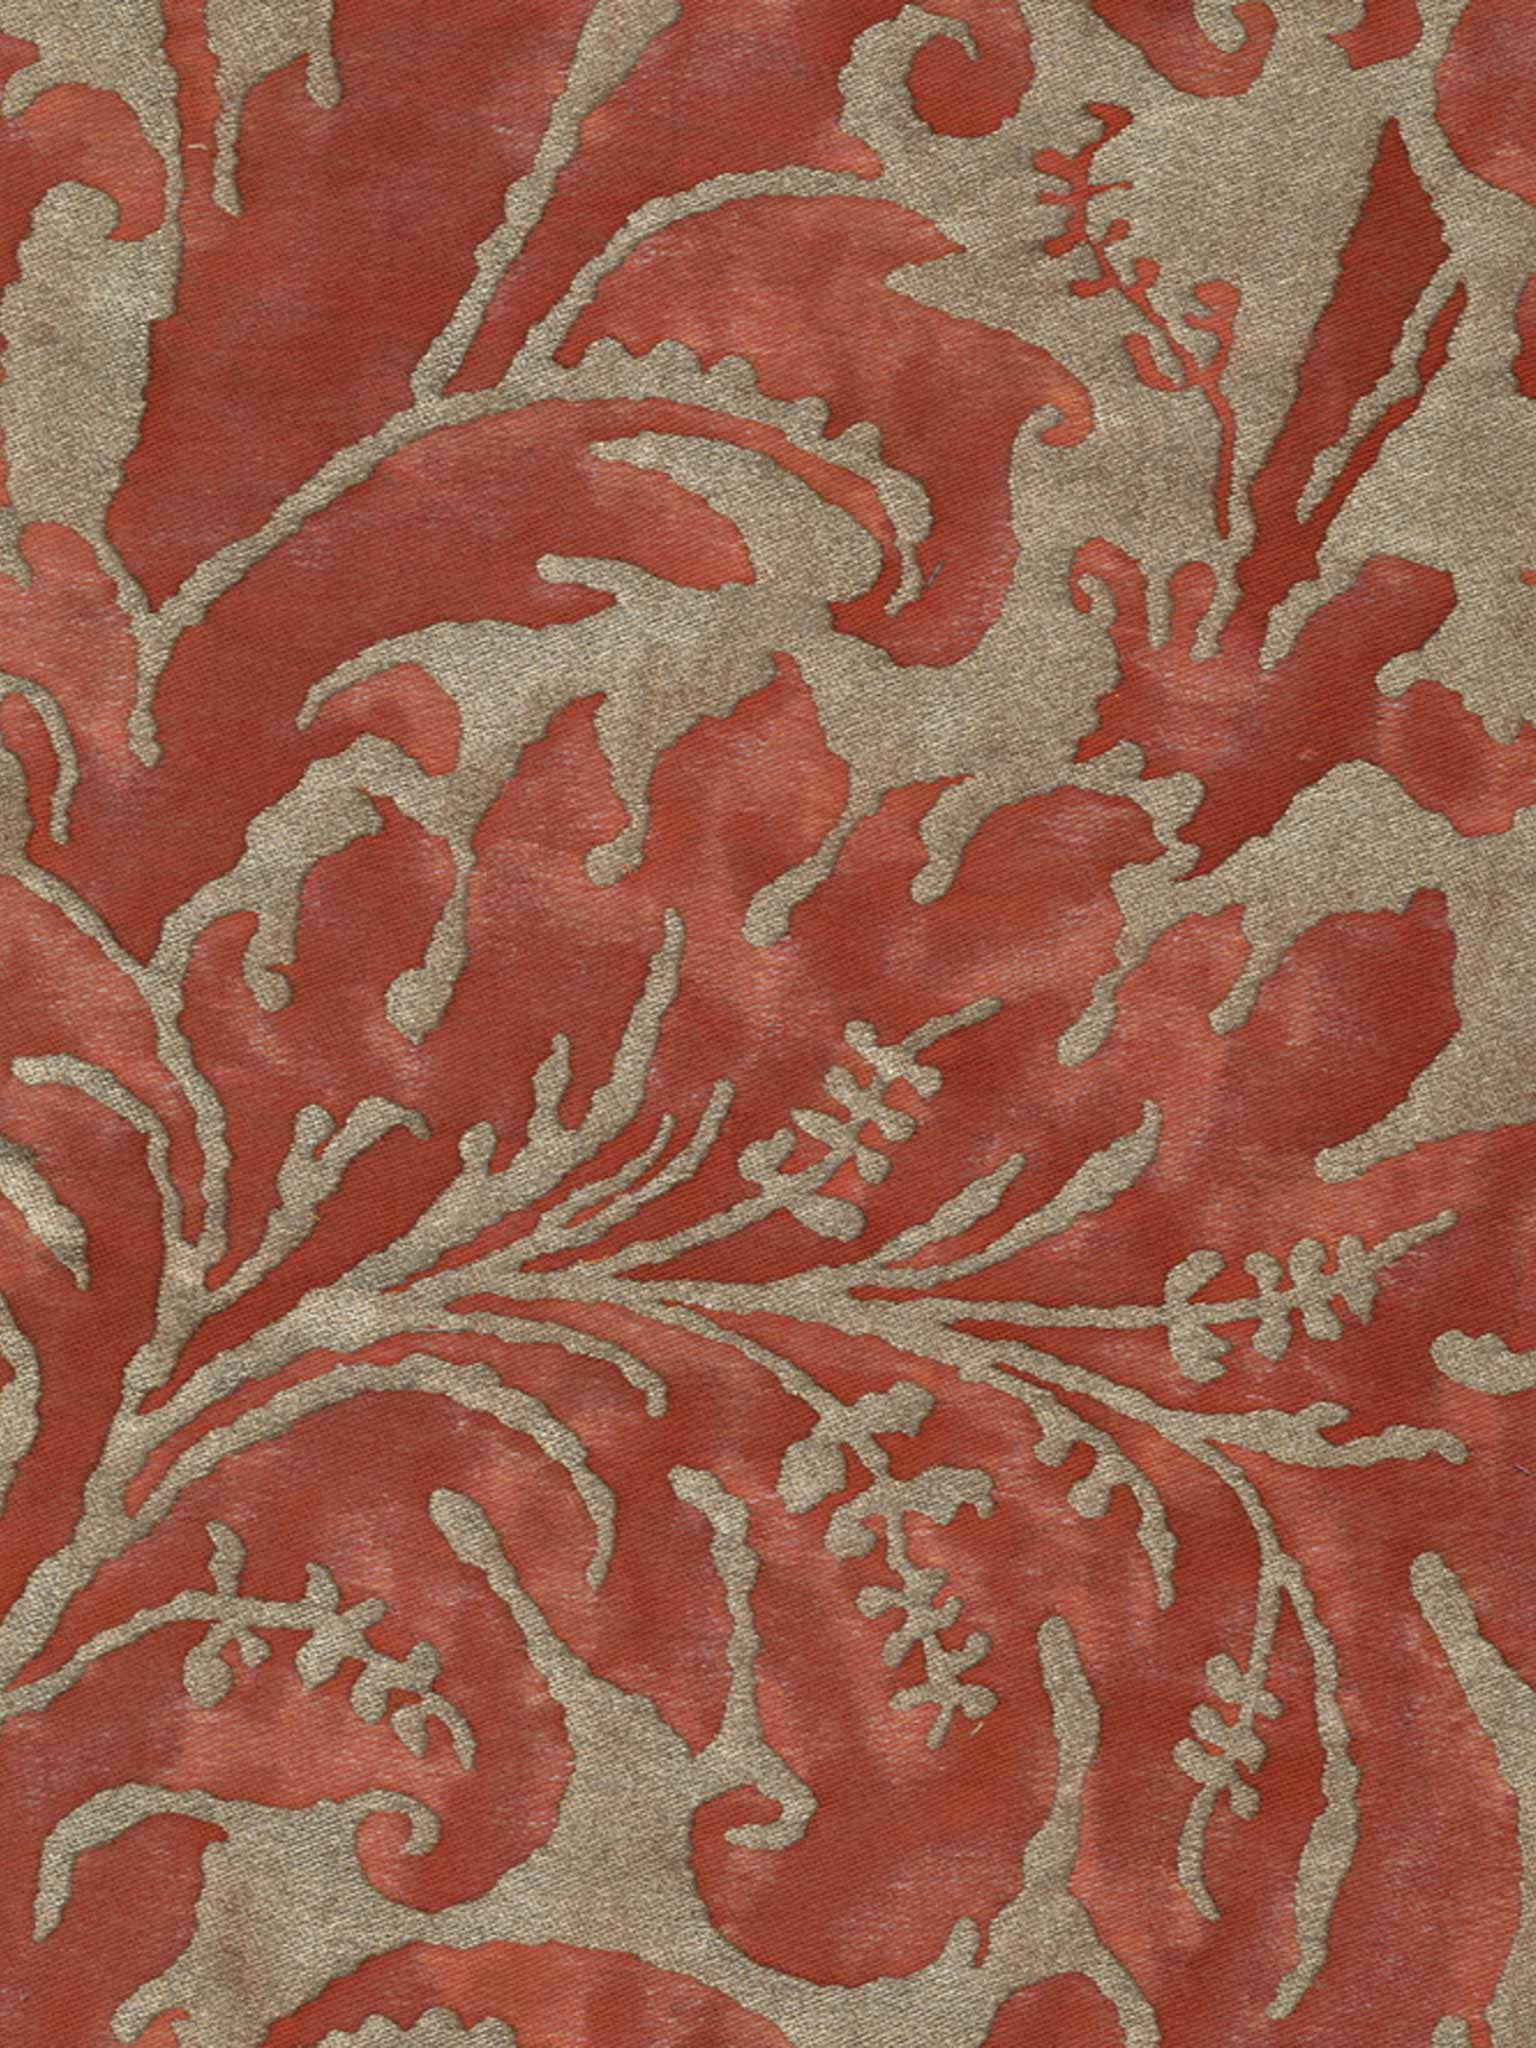 Lucrezia in bittersweet silvery gold fortuny 5395 lucrezia in bittersweet silvery gold fortuny printed cottons sisterspd